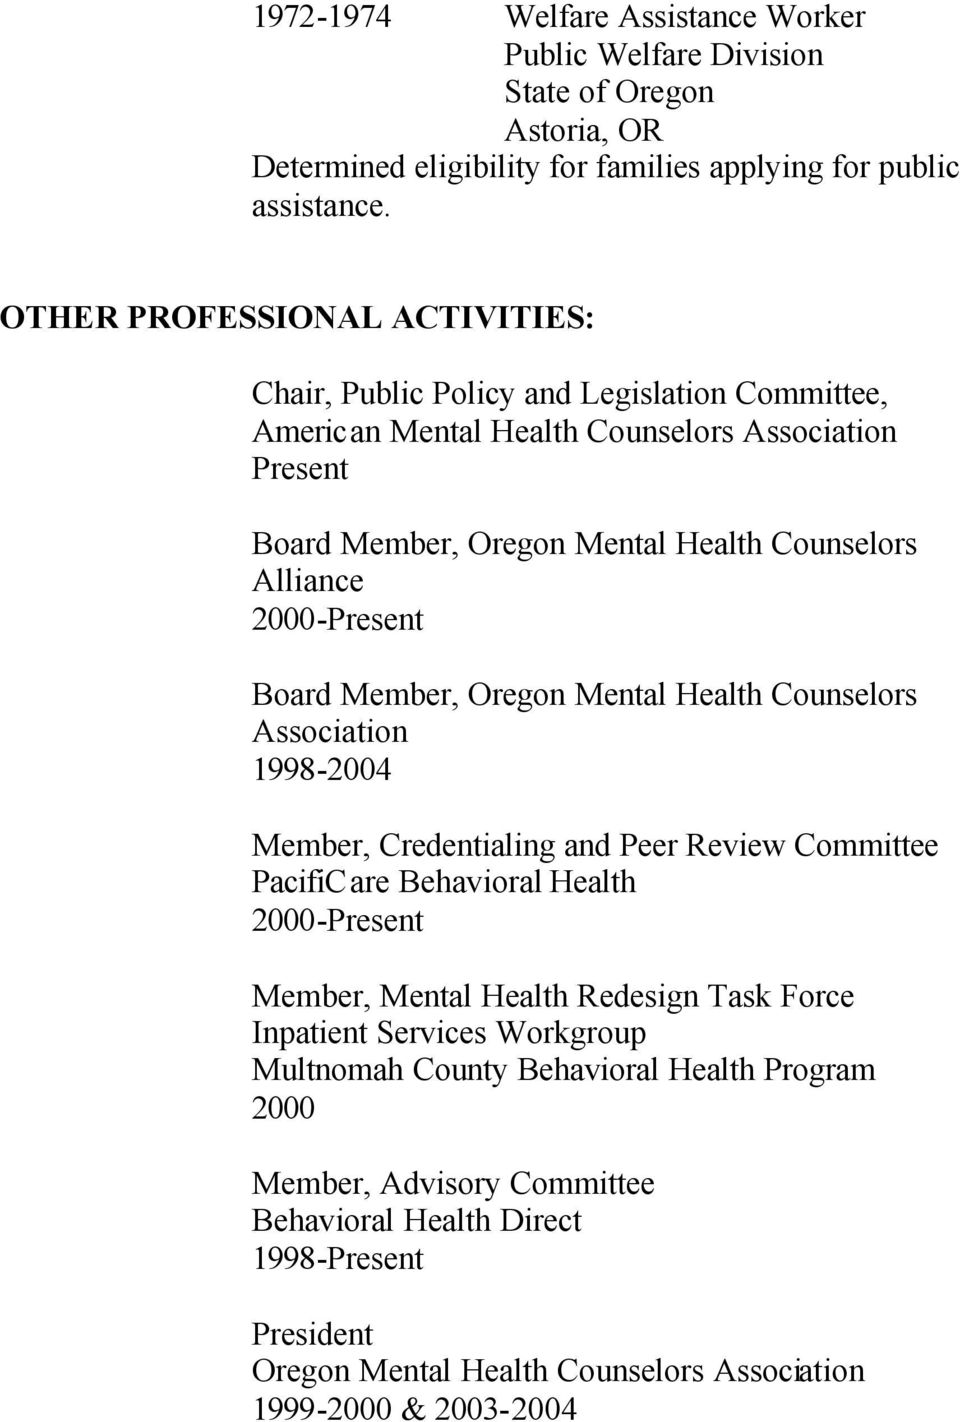 2000-Present Board Member, Oregon Mental Health Counselors Association 1998-2004 Member, Credentialing and Peer Review Committee PacifiCare Behavioral Health 2000-Present Member, Mental Health